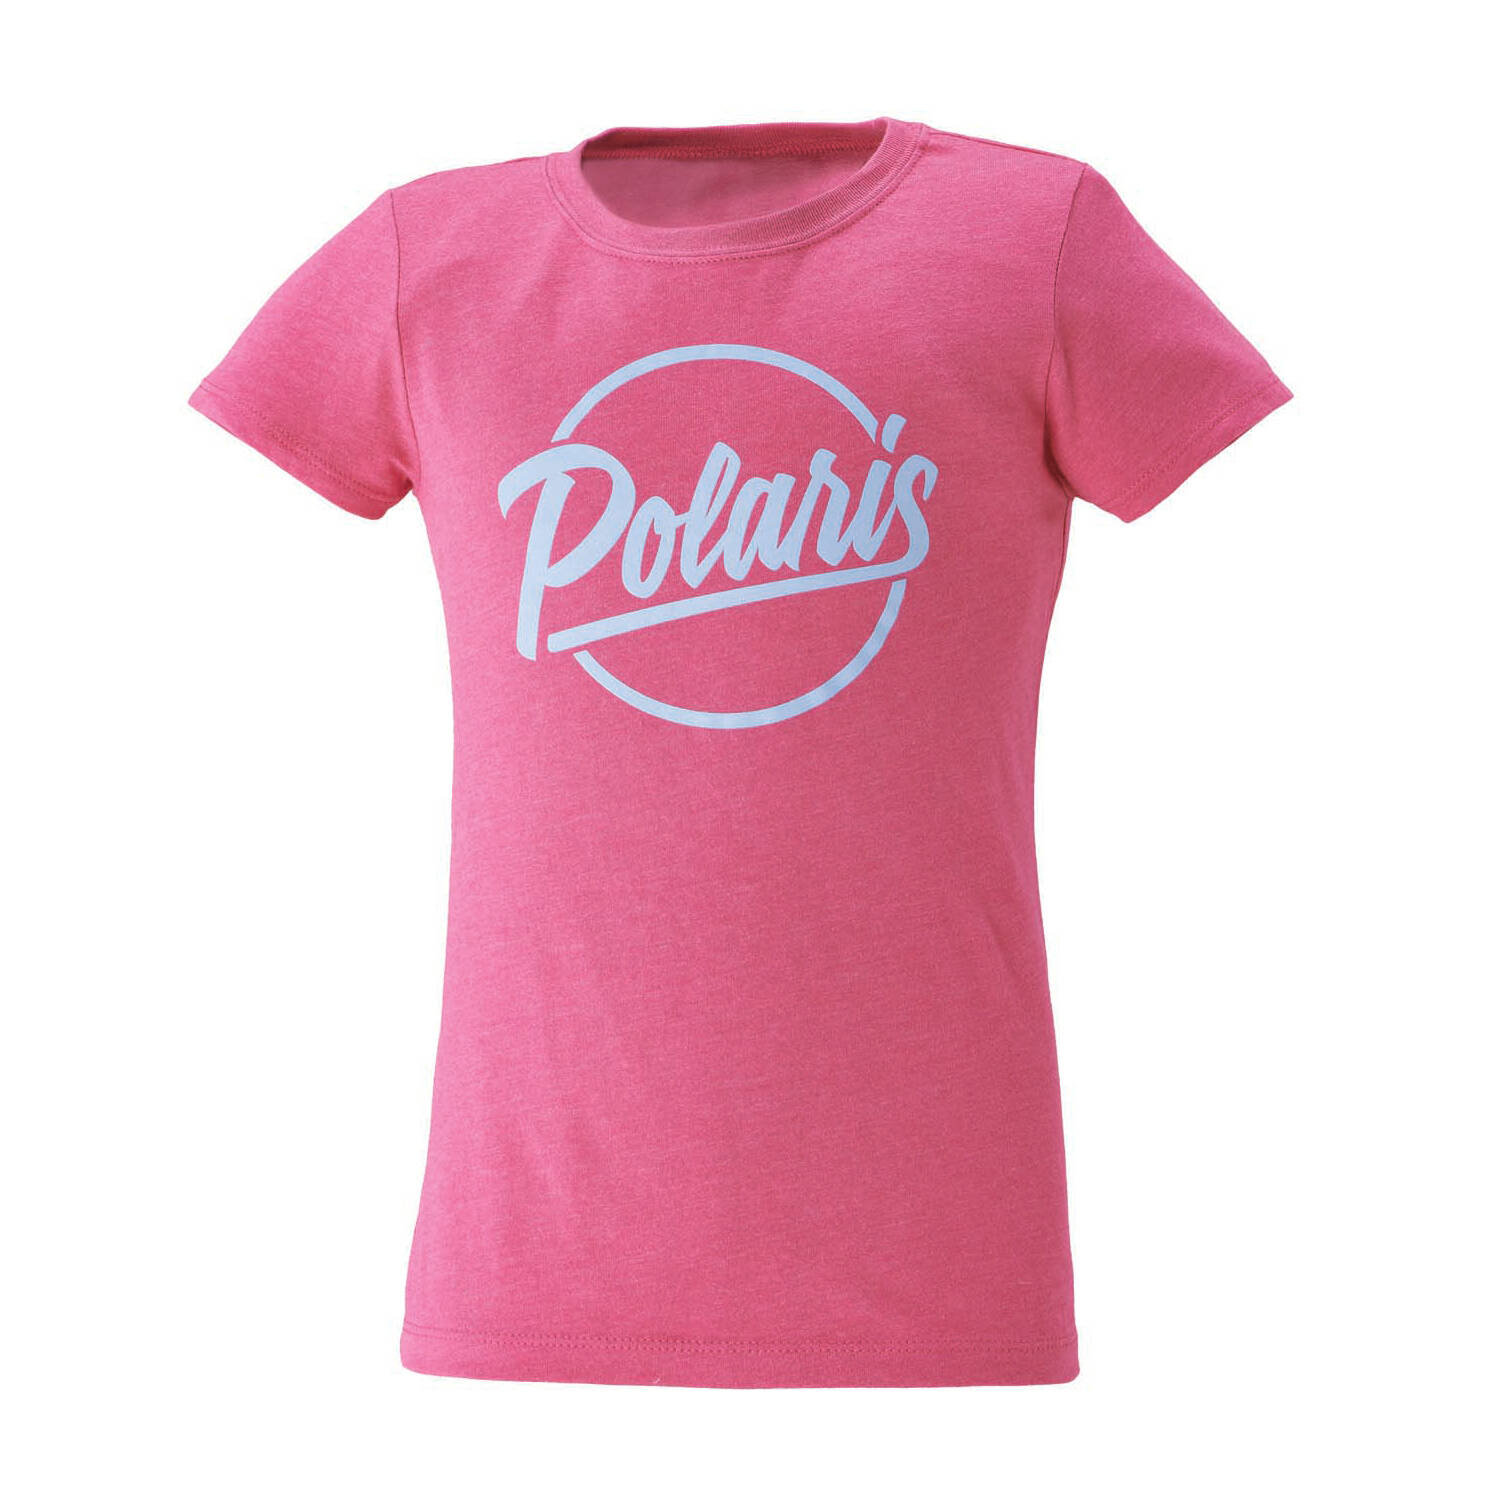 Youth Graphic T-Shirt with Script Polaris® Logo, Raspberry